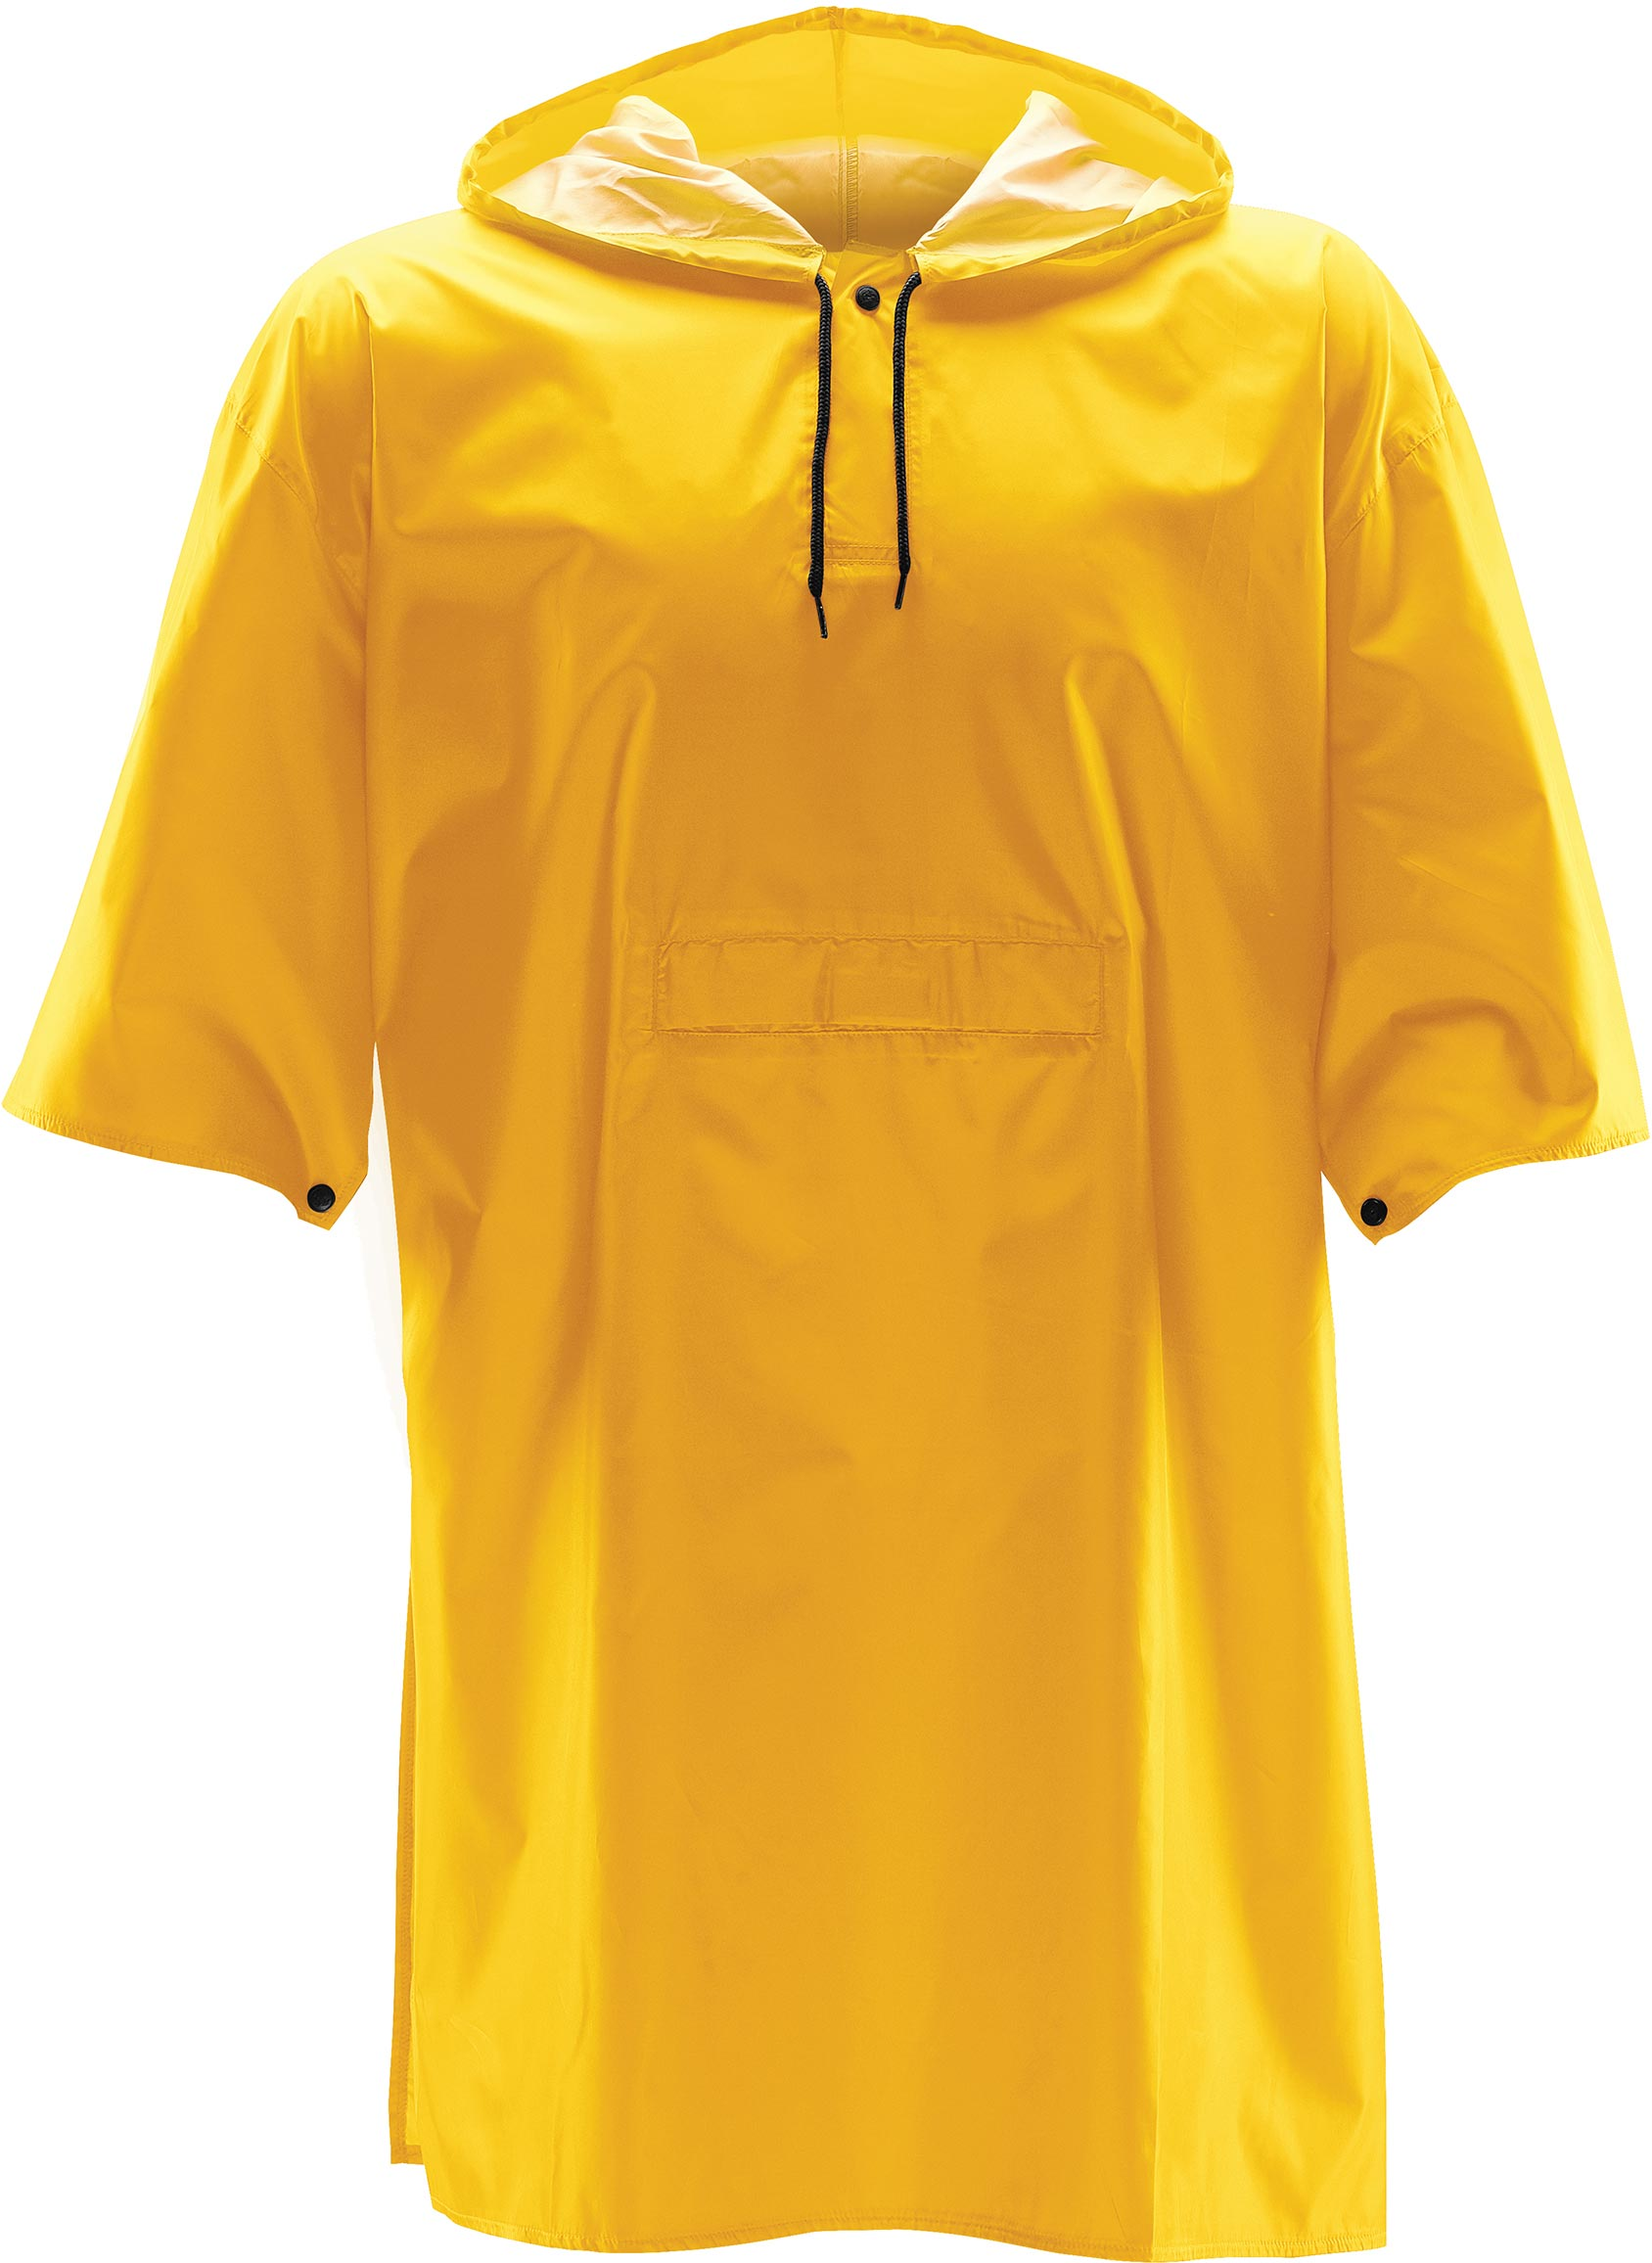 Stormtech SRP-2 - Torrent Snap Fit Poncho